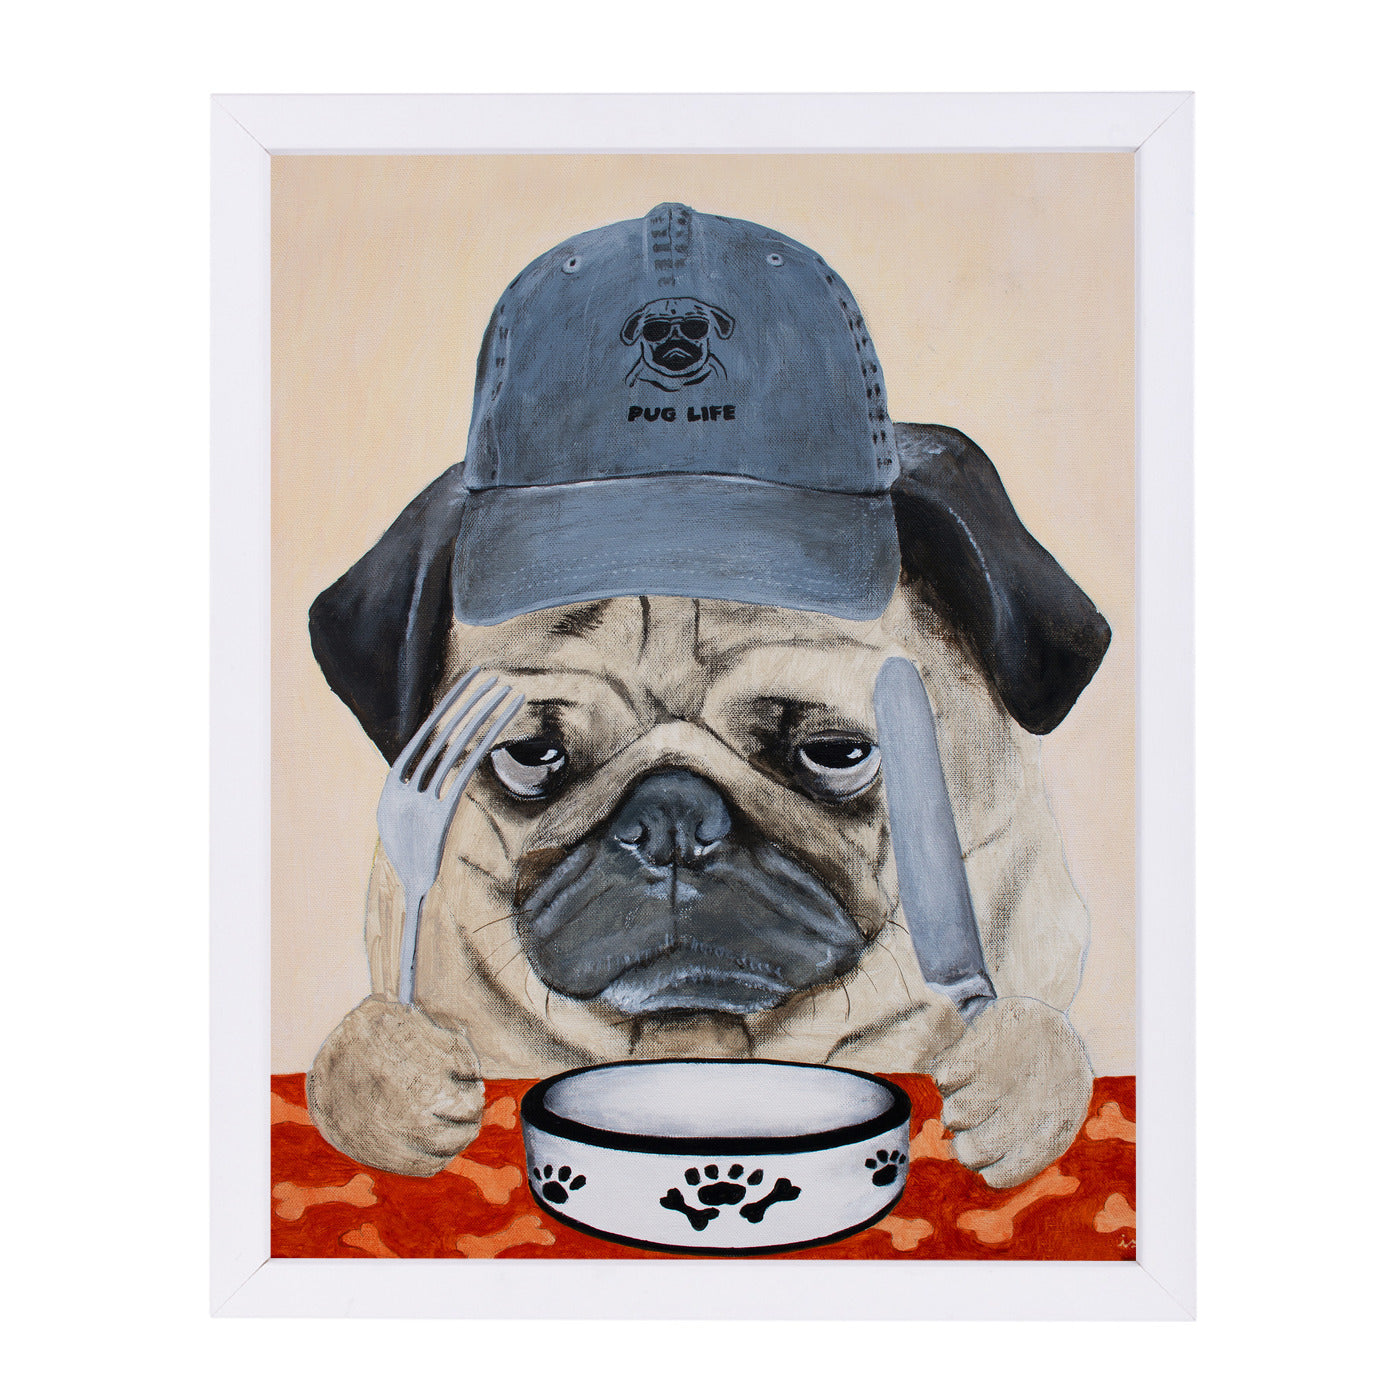 Pug Life By Coco De Paris - White Framed Print - Wall Art - Americanflat